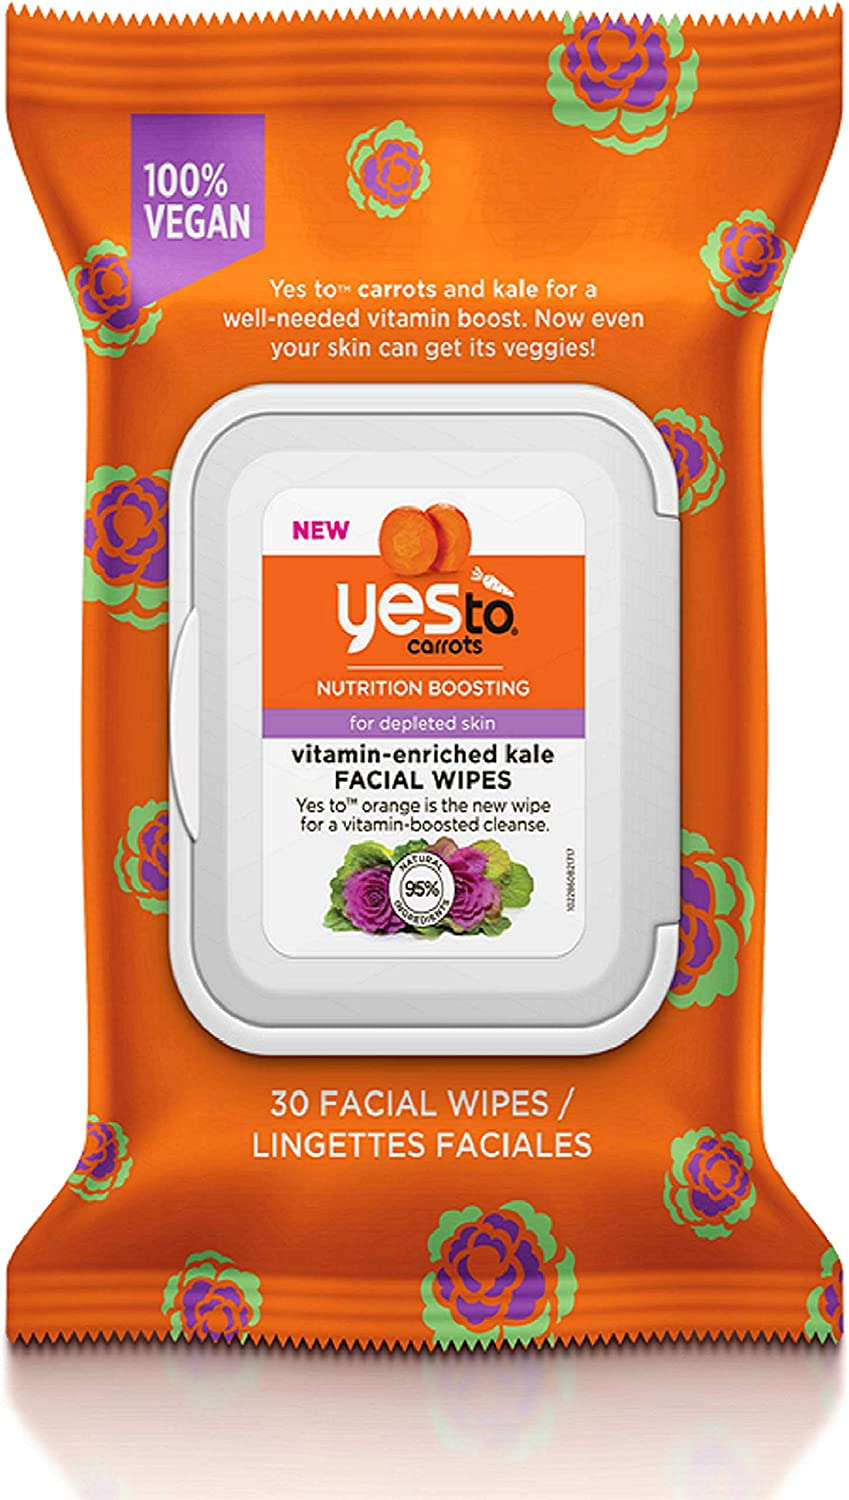 Yes To Carrots Nutrition Boosting Vitamin-Enriched Kale Facial Wipes - 30 Count | For Depleted Skin | Carrots and Kale For Nourished, Healthy-Looking Skin